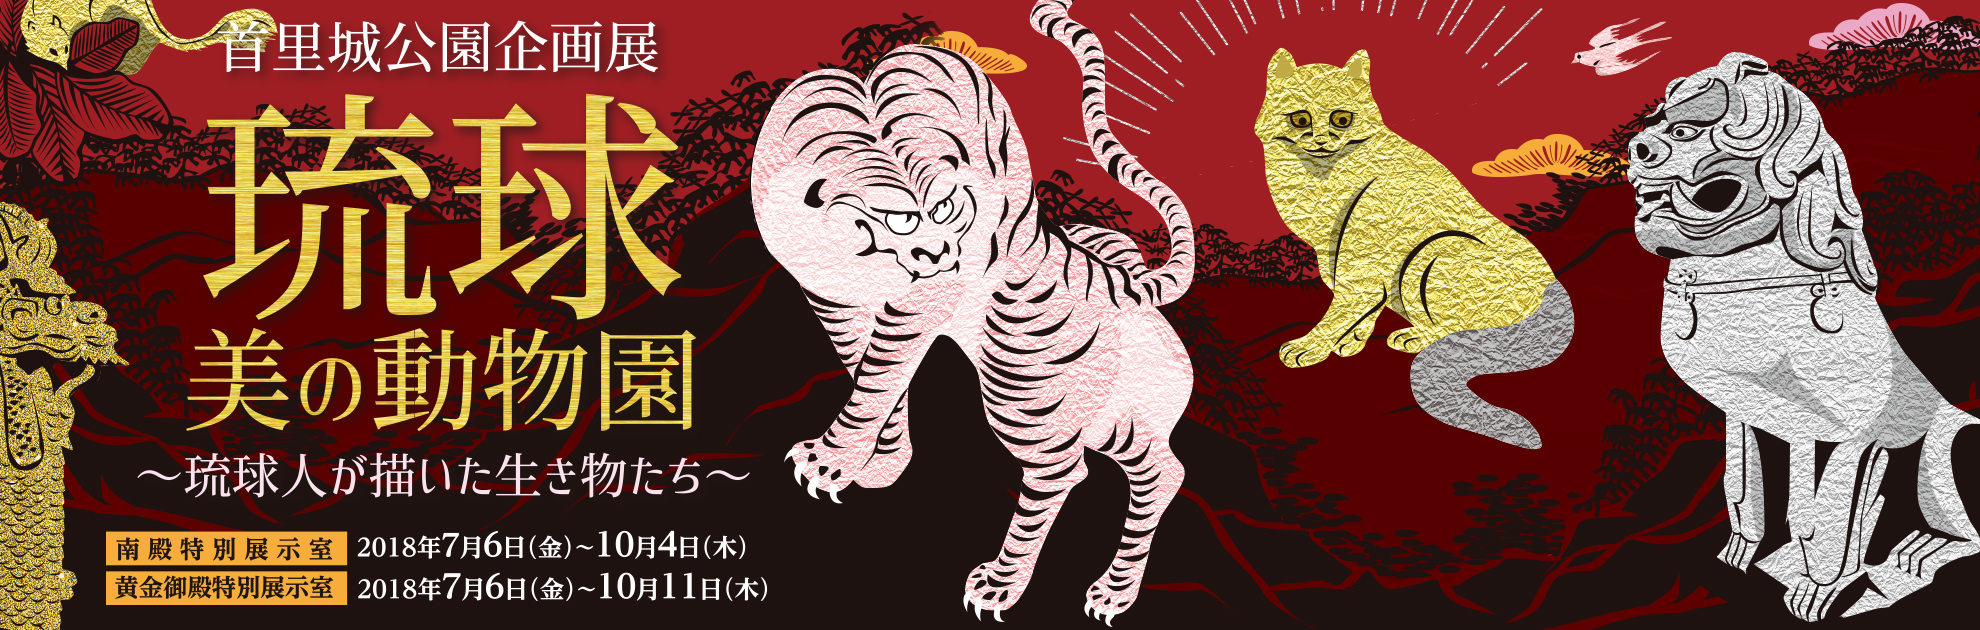 "Shurijo Castle Park plan exhibition ""creatures ~ which zoo - Ryukyuan of the Ryukyu beauty drew"""